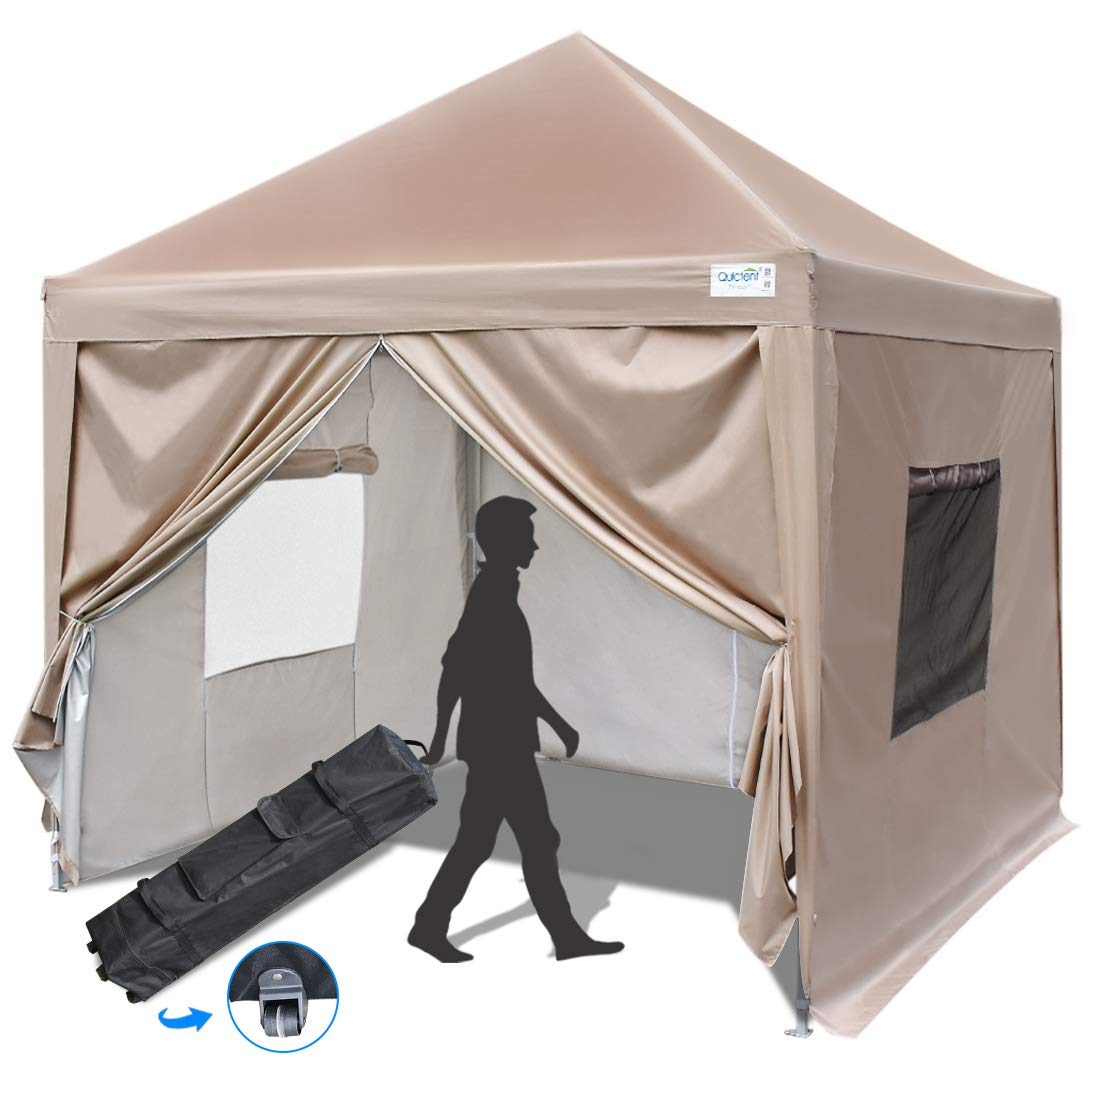 Quictent Upgraded Privacy 8x8 EZ Pop Up Canopy Tent Instant Canopy with 4 Sidewalls, Mesh Windows & Wheeled Bag 100% Waterproof-9 Colors (Beige 1)